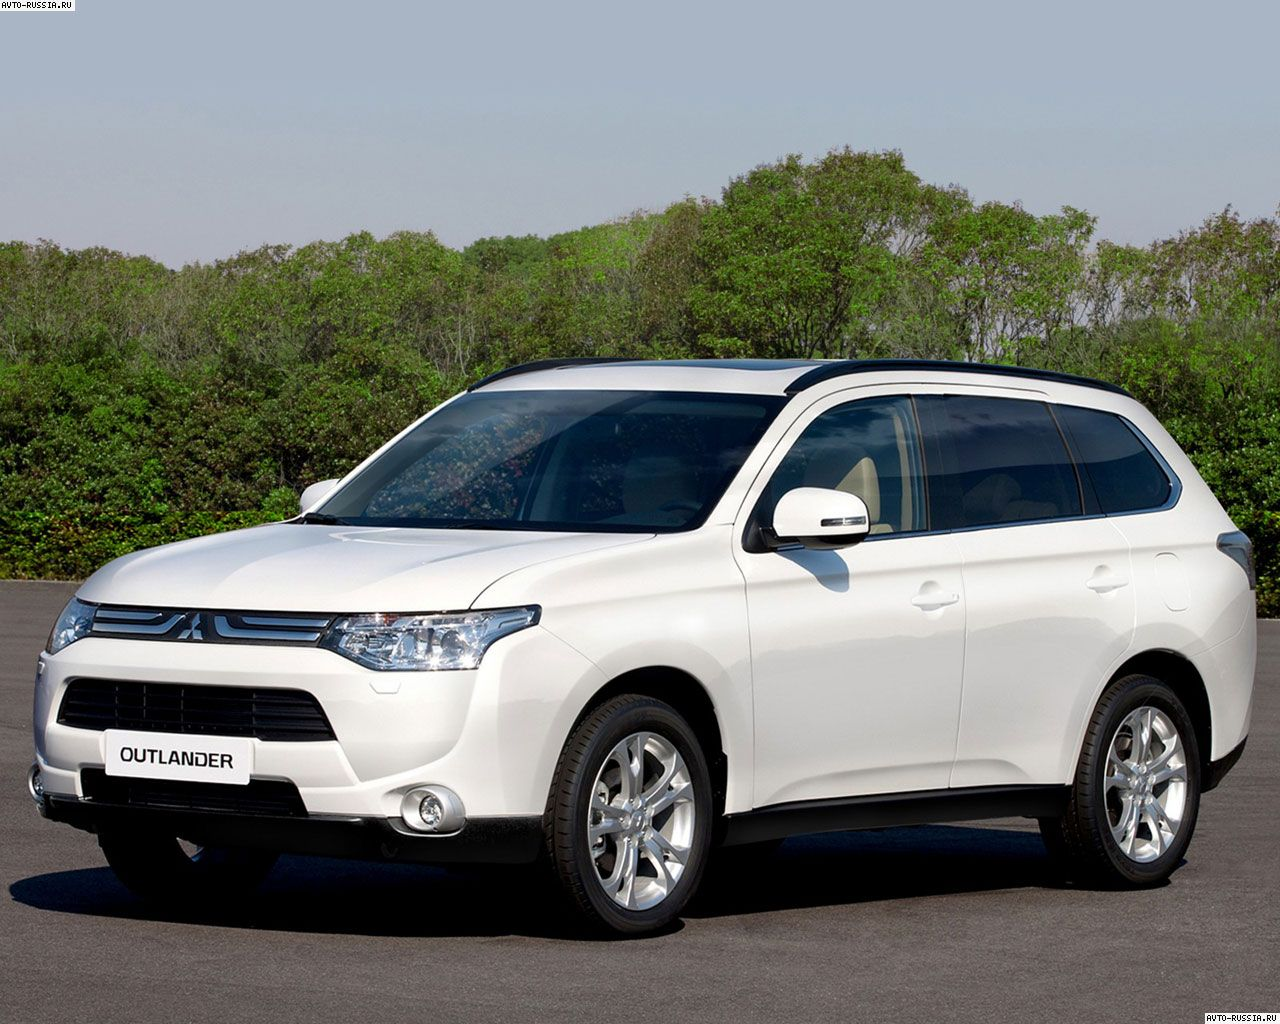 2015 Mitsubishi Outlander Wallpaper HD